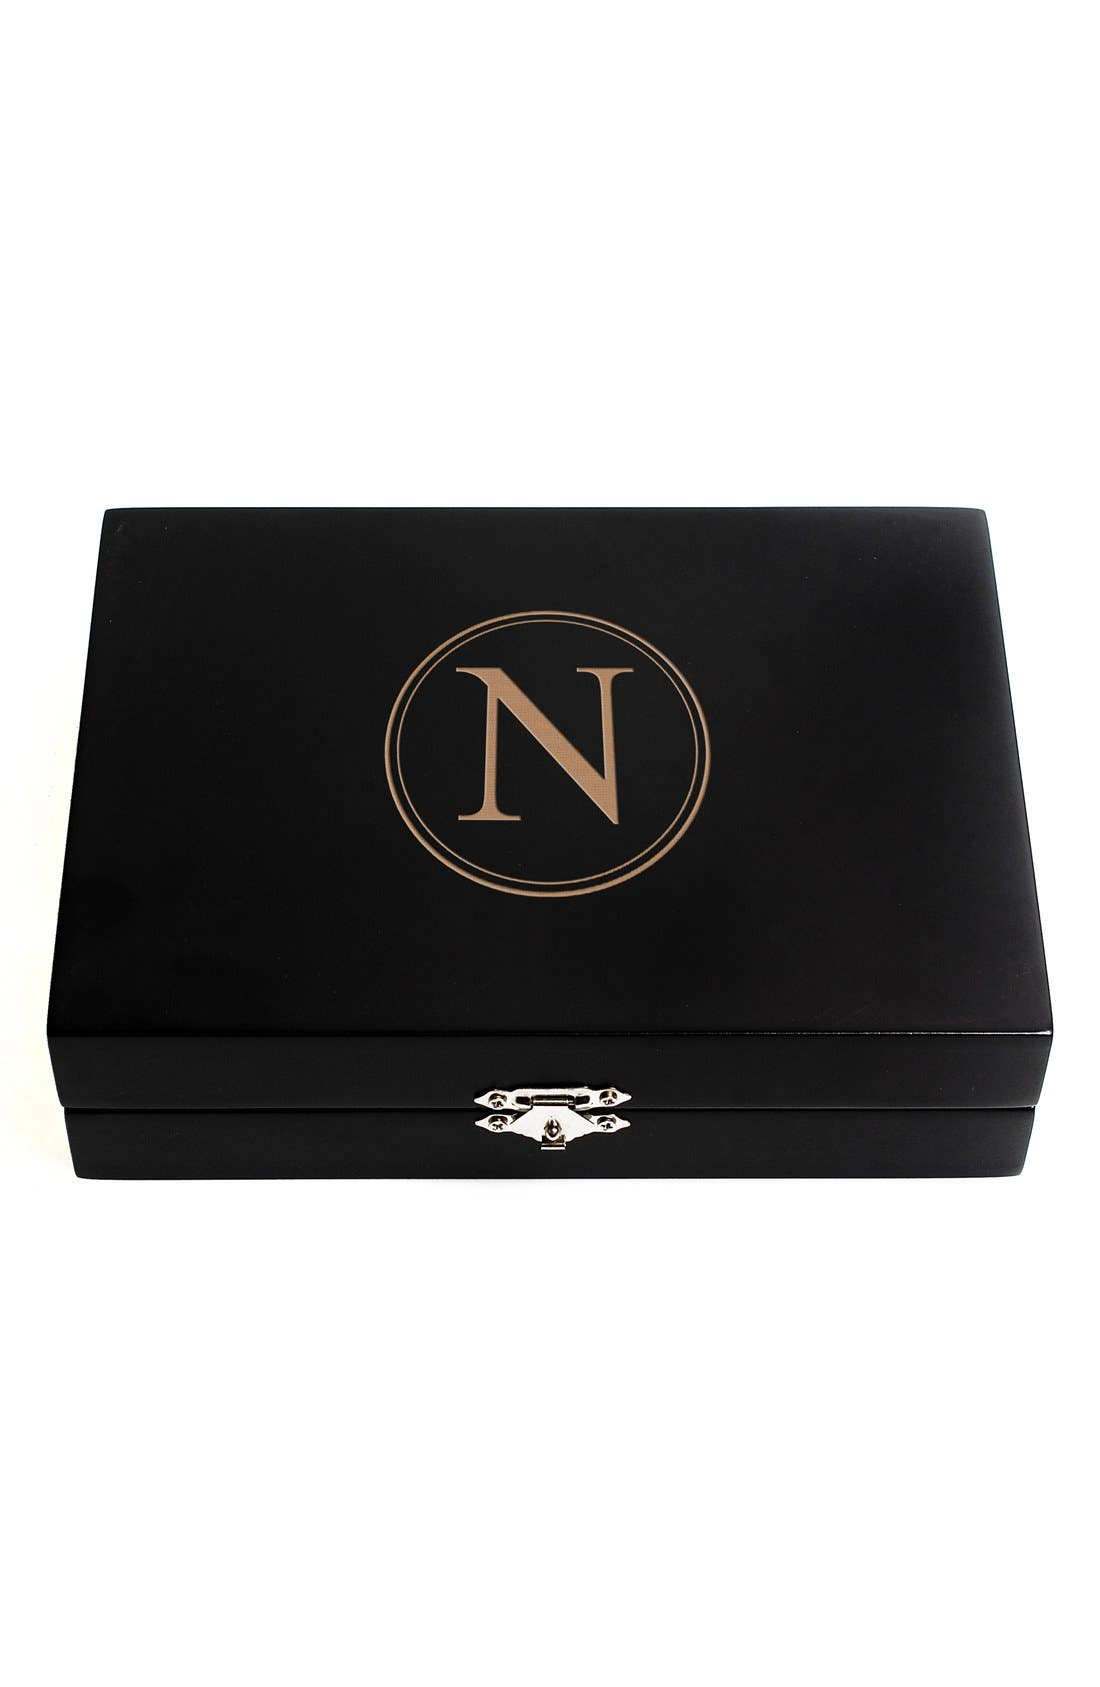 Monogram Wooden Jewelry Box,                             Main thumbnail 16, color,